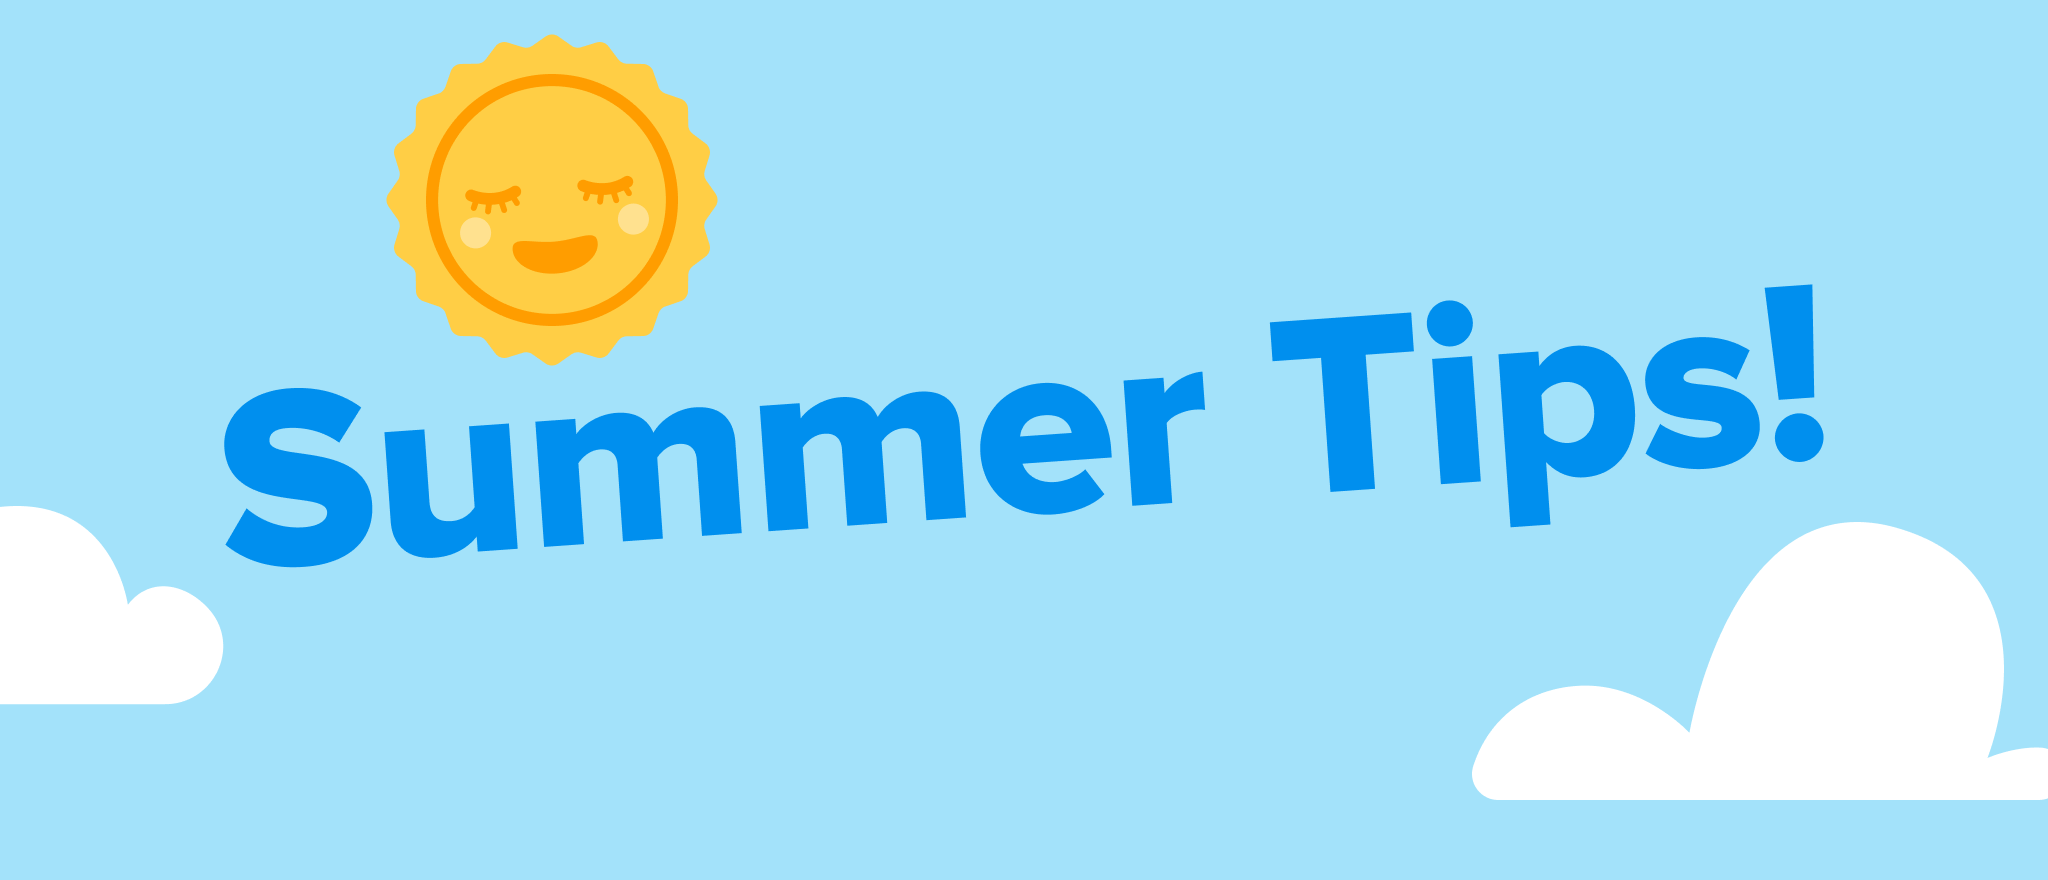 Summer tip part 2: Icing and cooling for hot days!